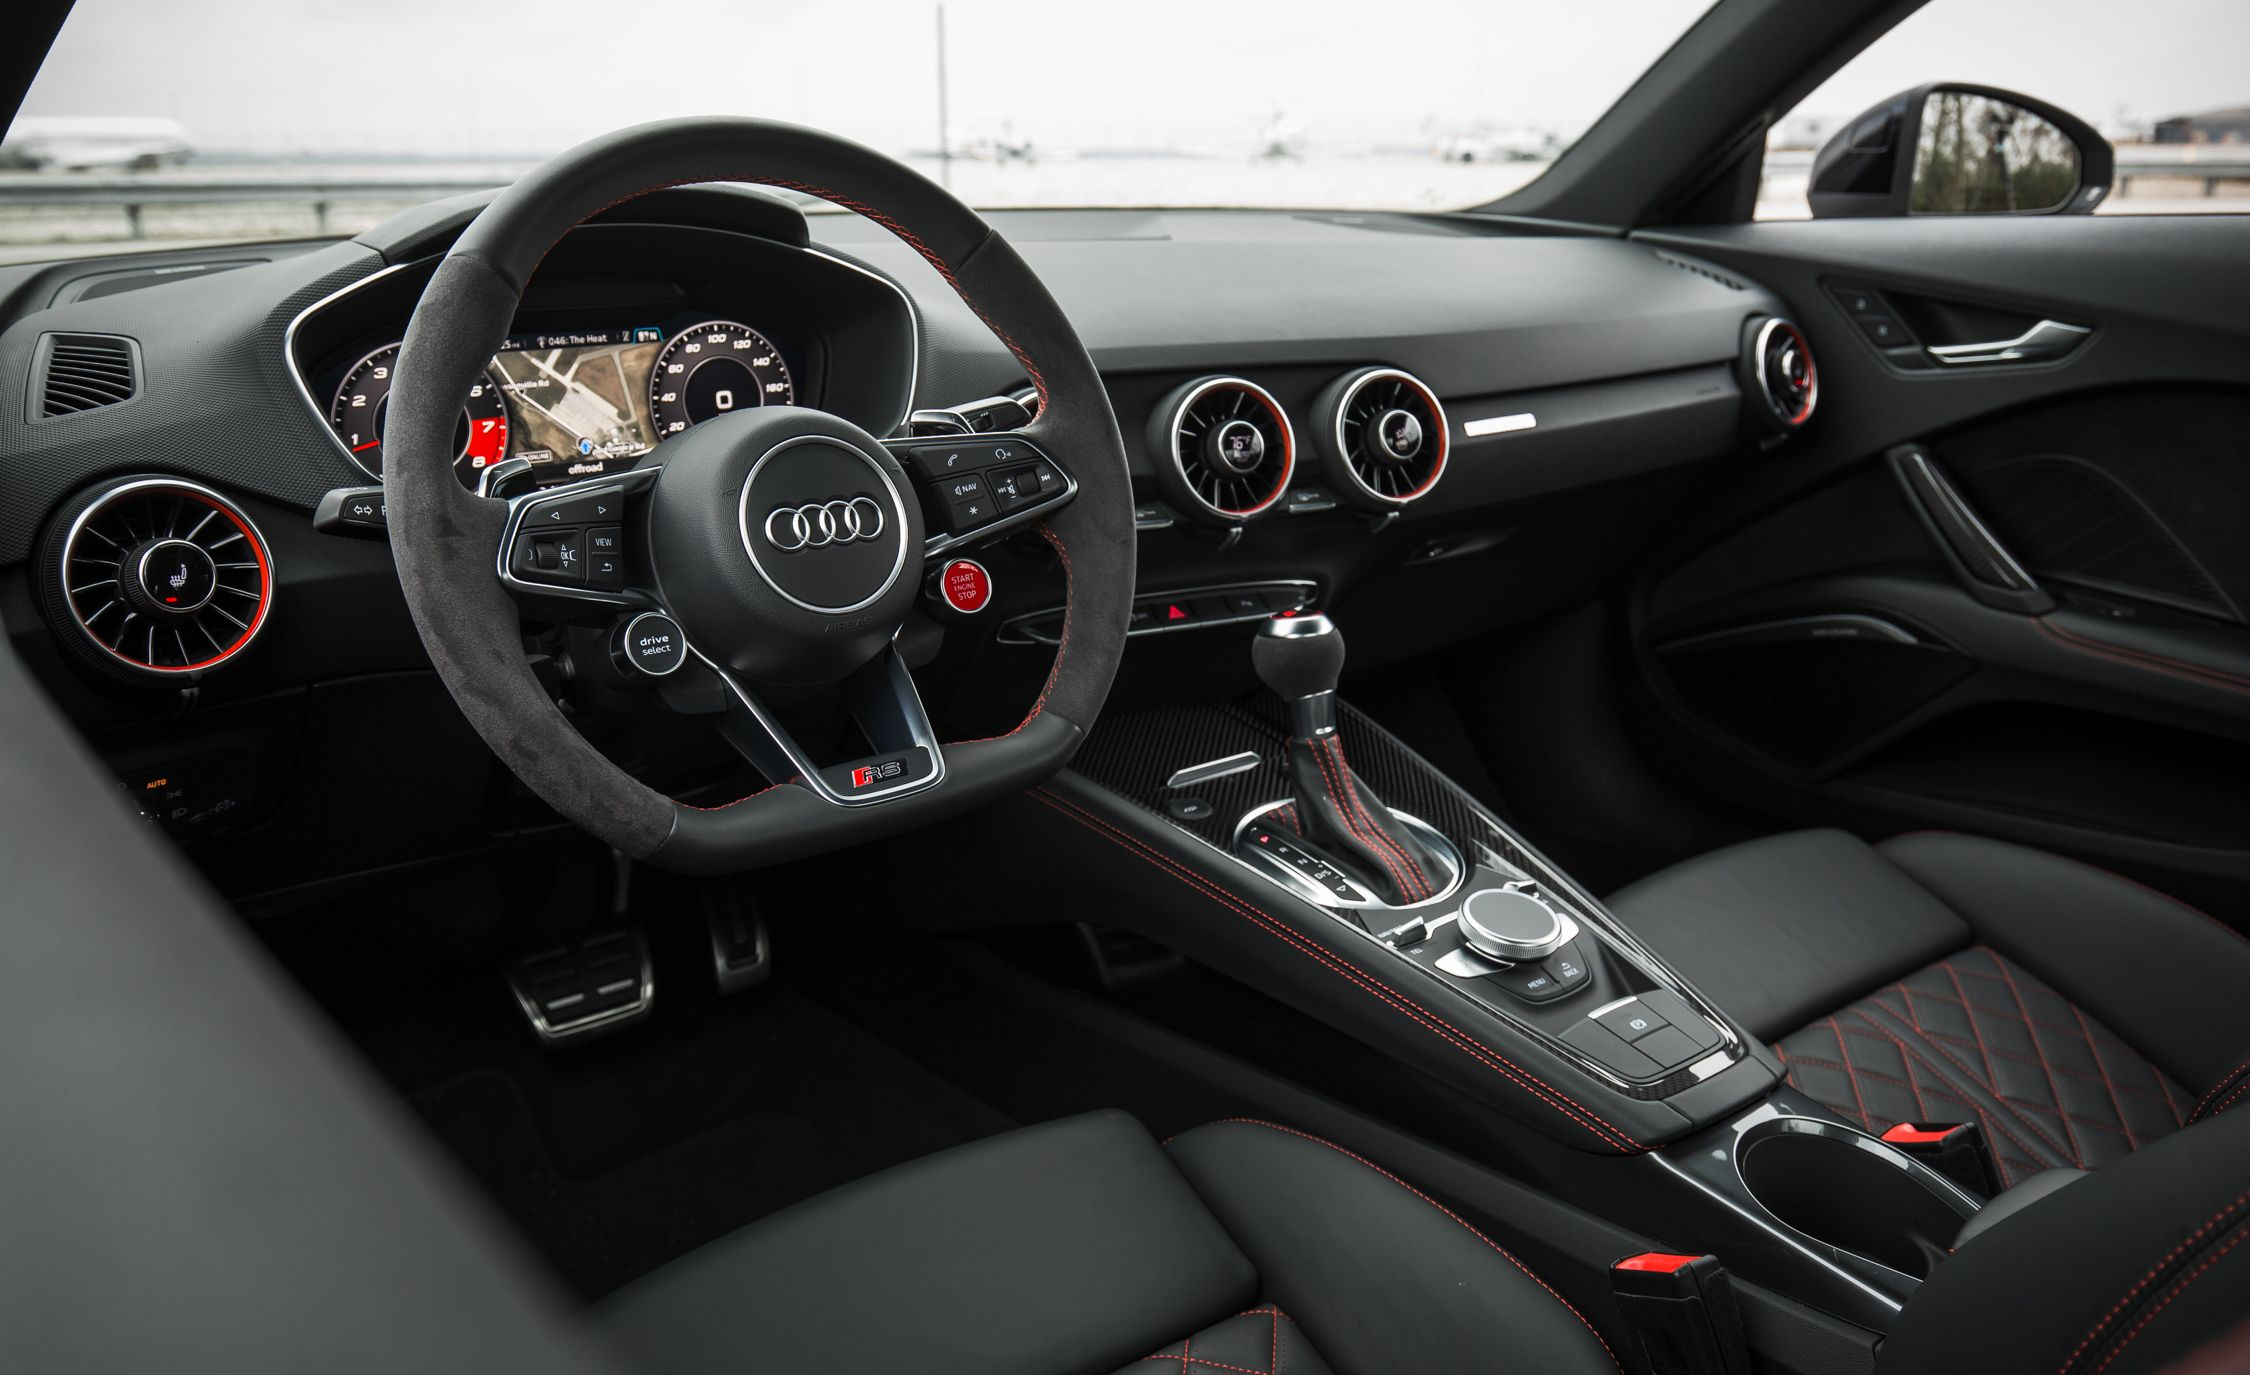 Audi TT RS Reviews | Audi TT RS Price, Photos, and Specs | Car and ...